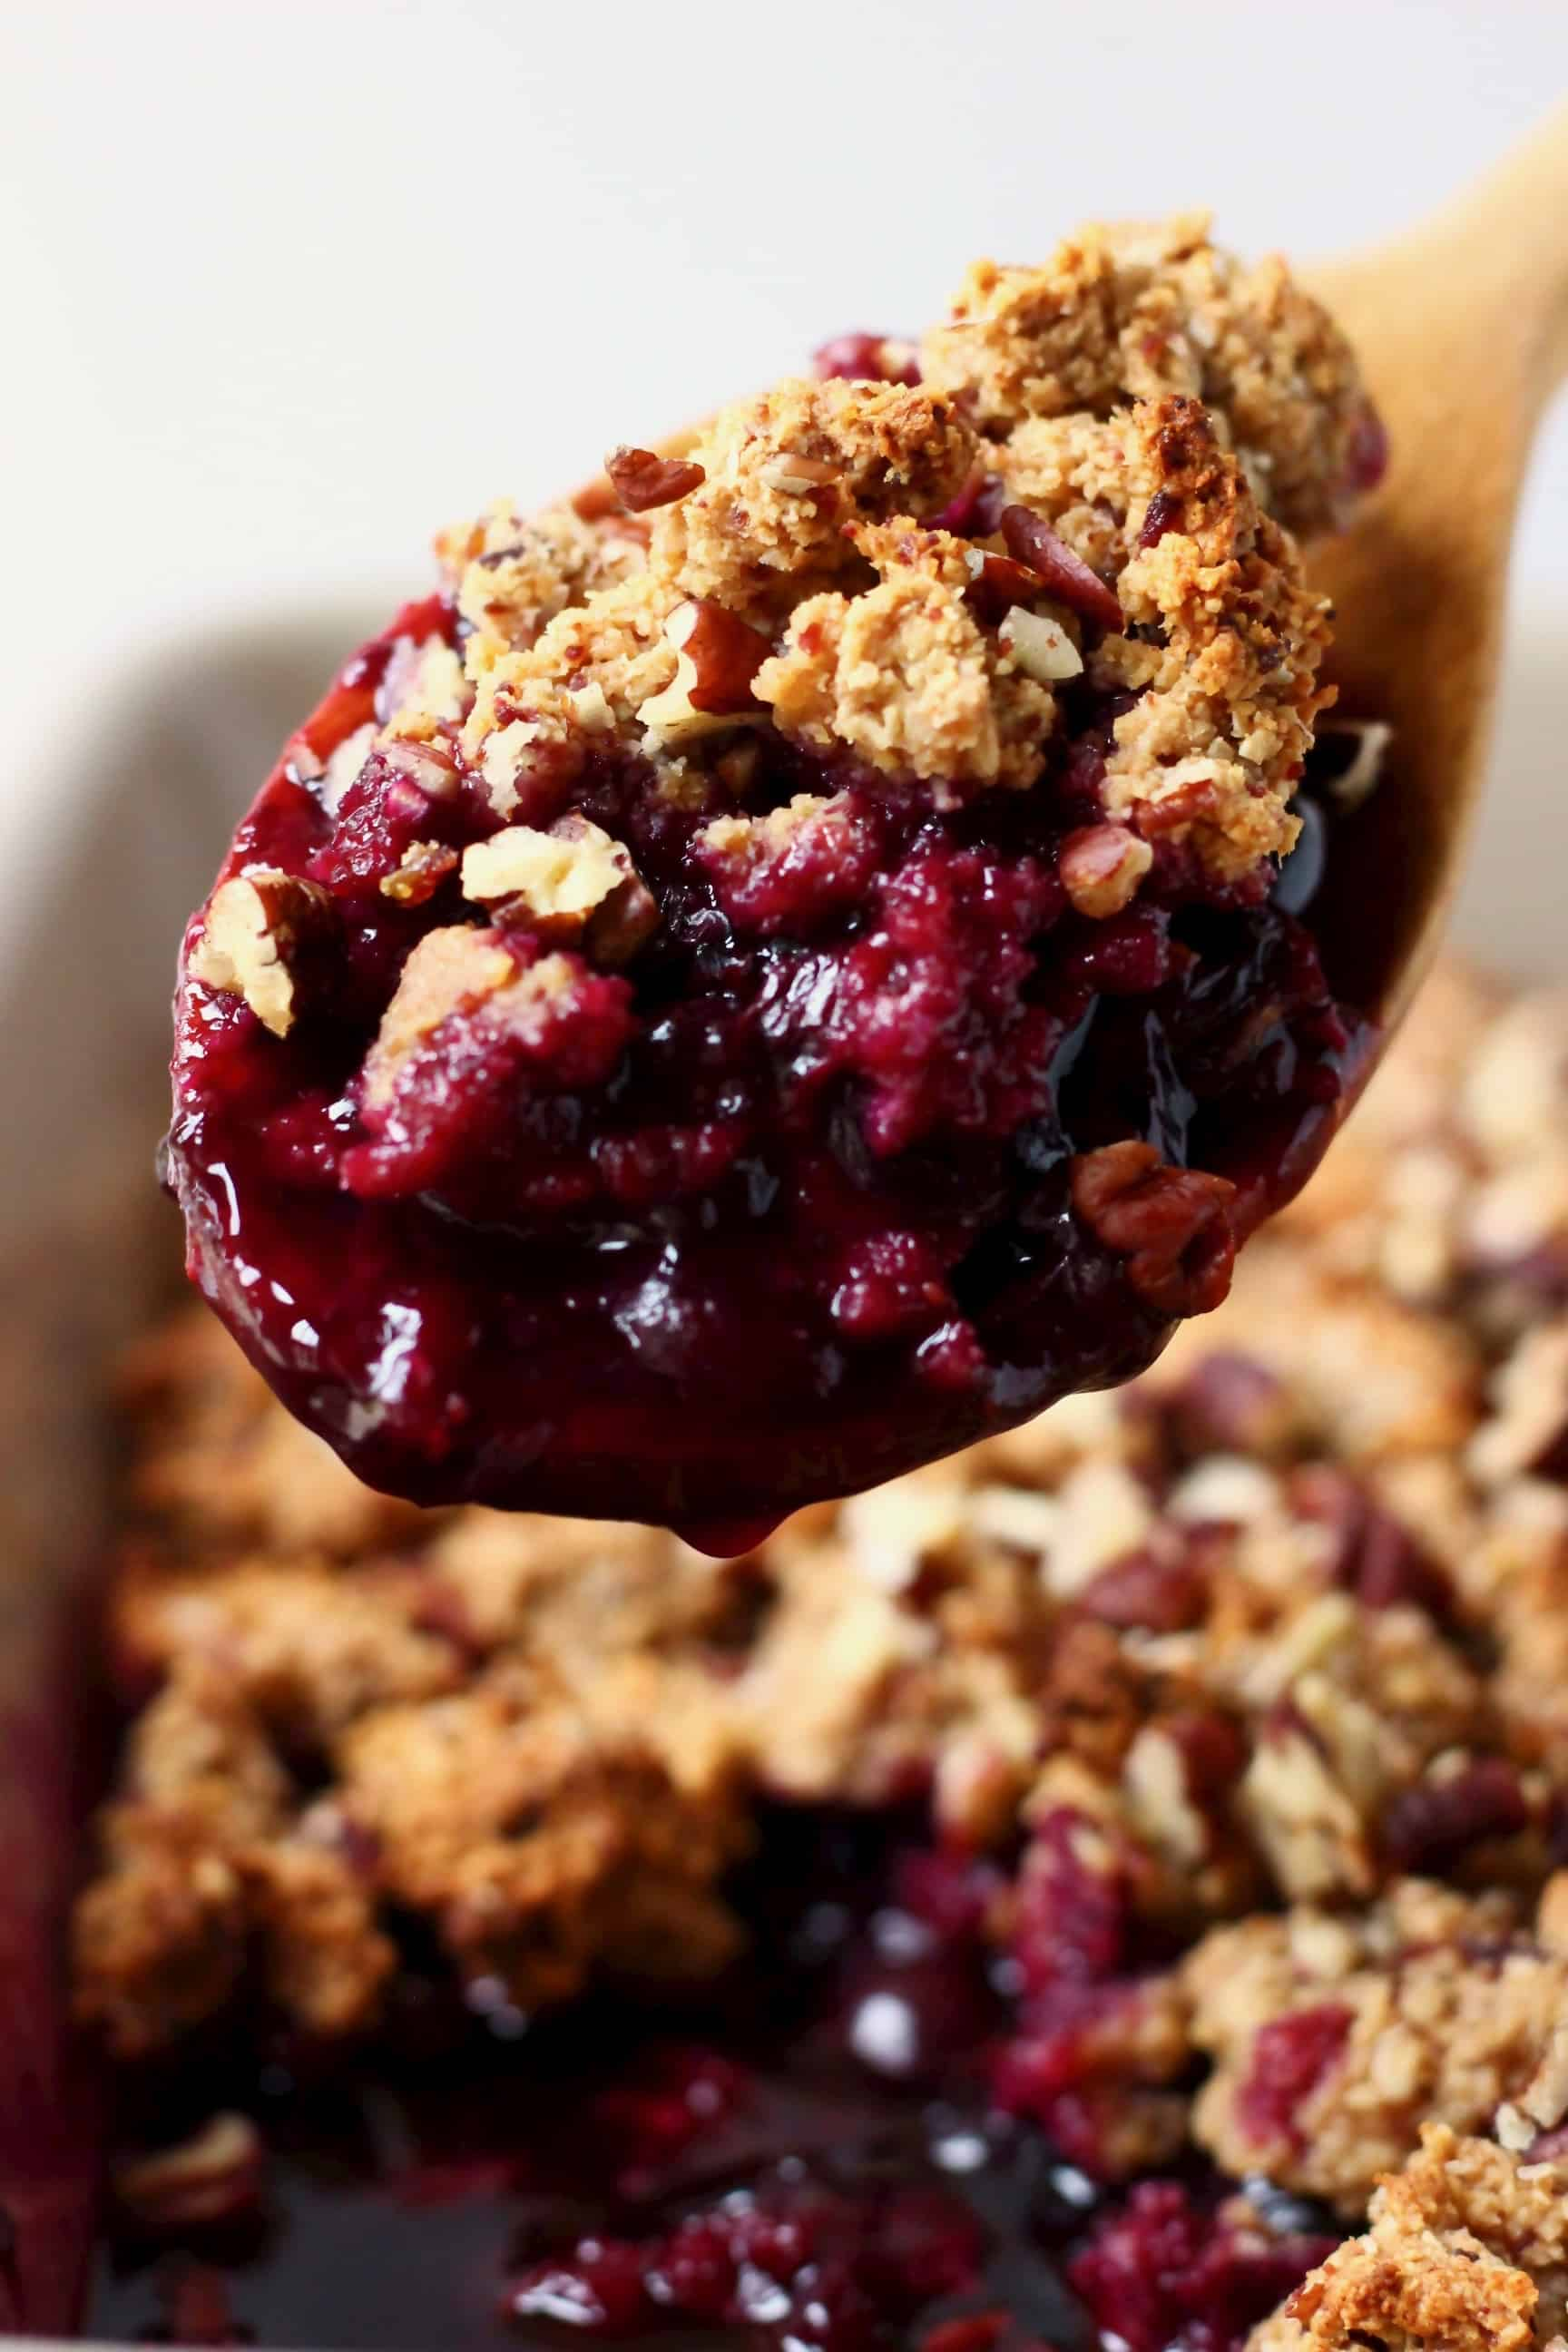 A grey rectangular baking dish of blueberry crisp with a wooden spoon lifting up a mouthful of it